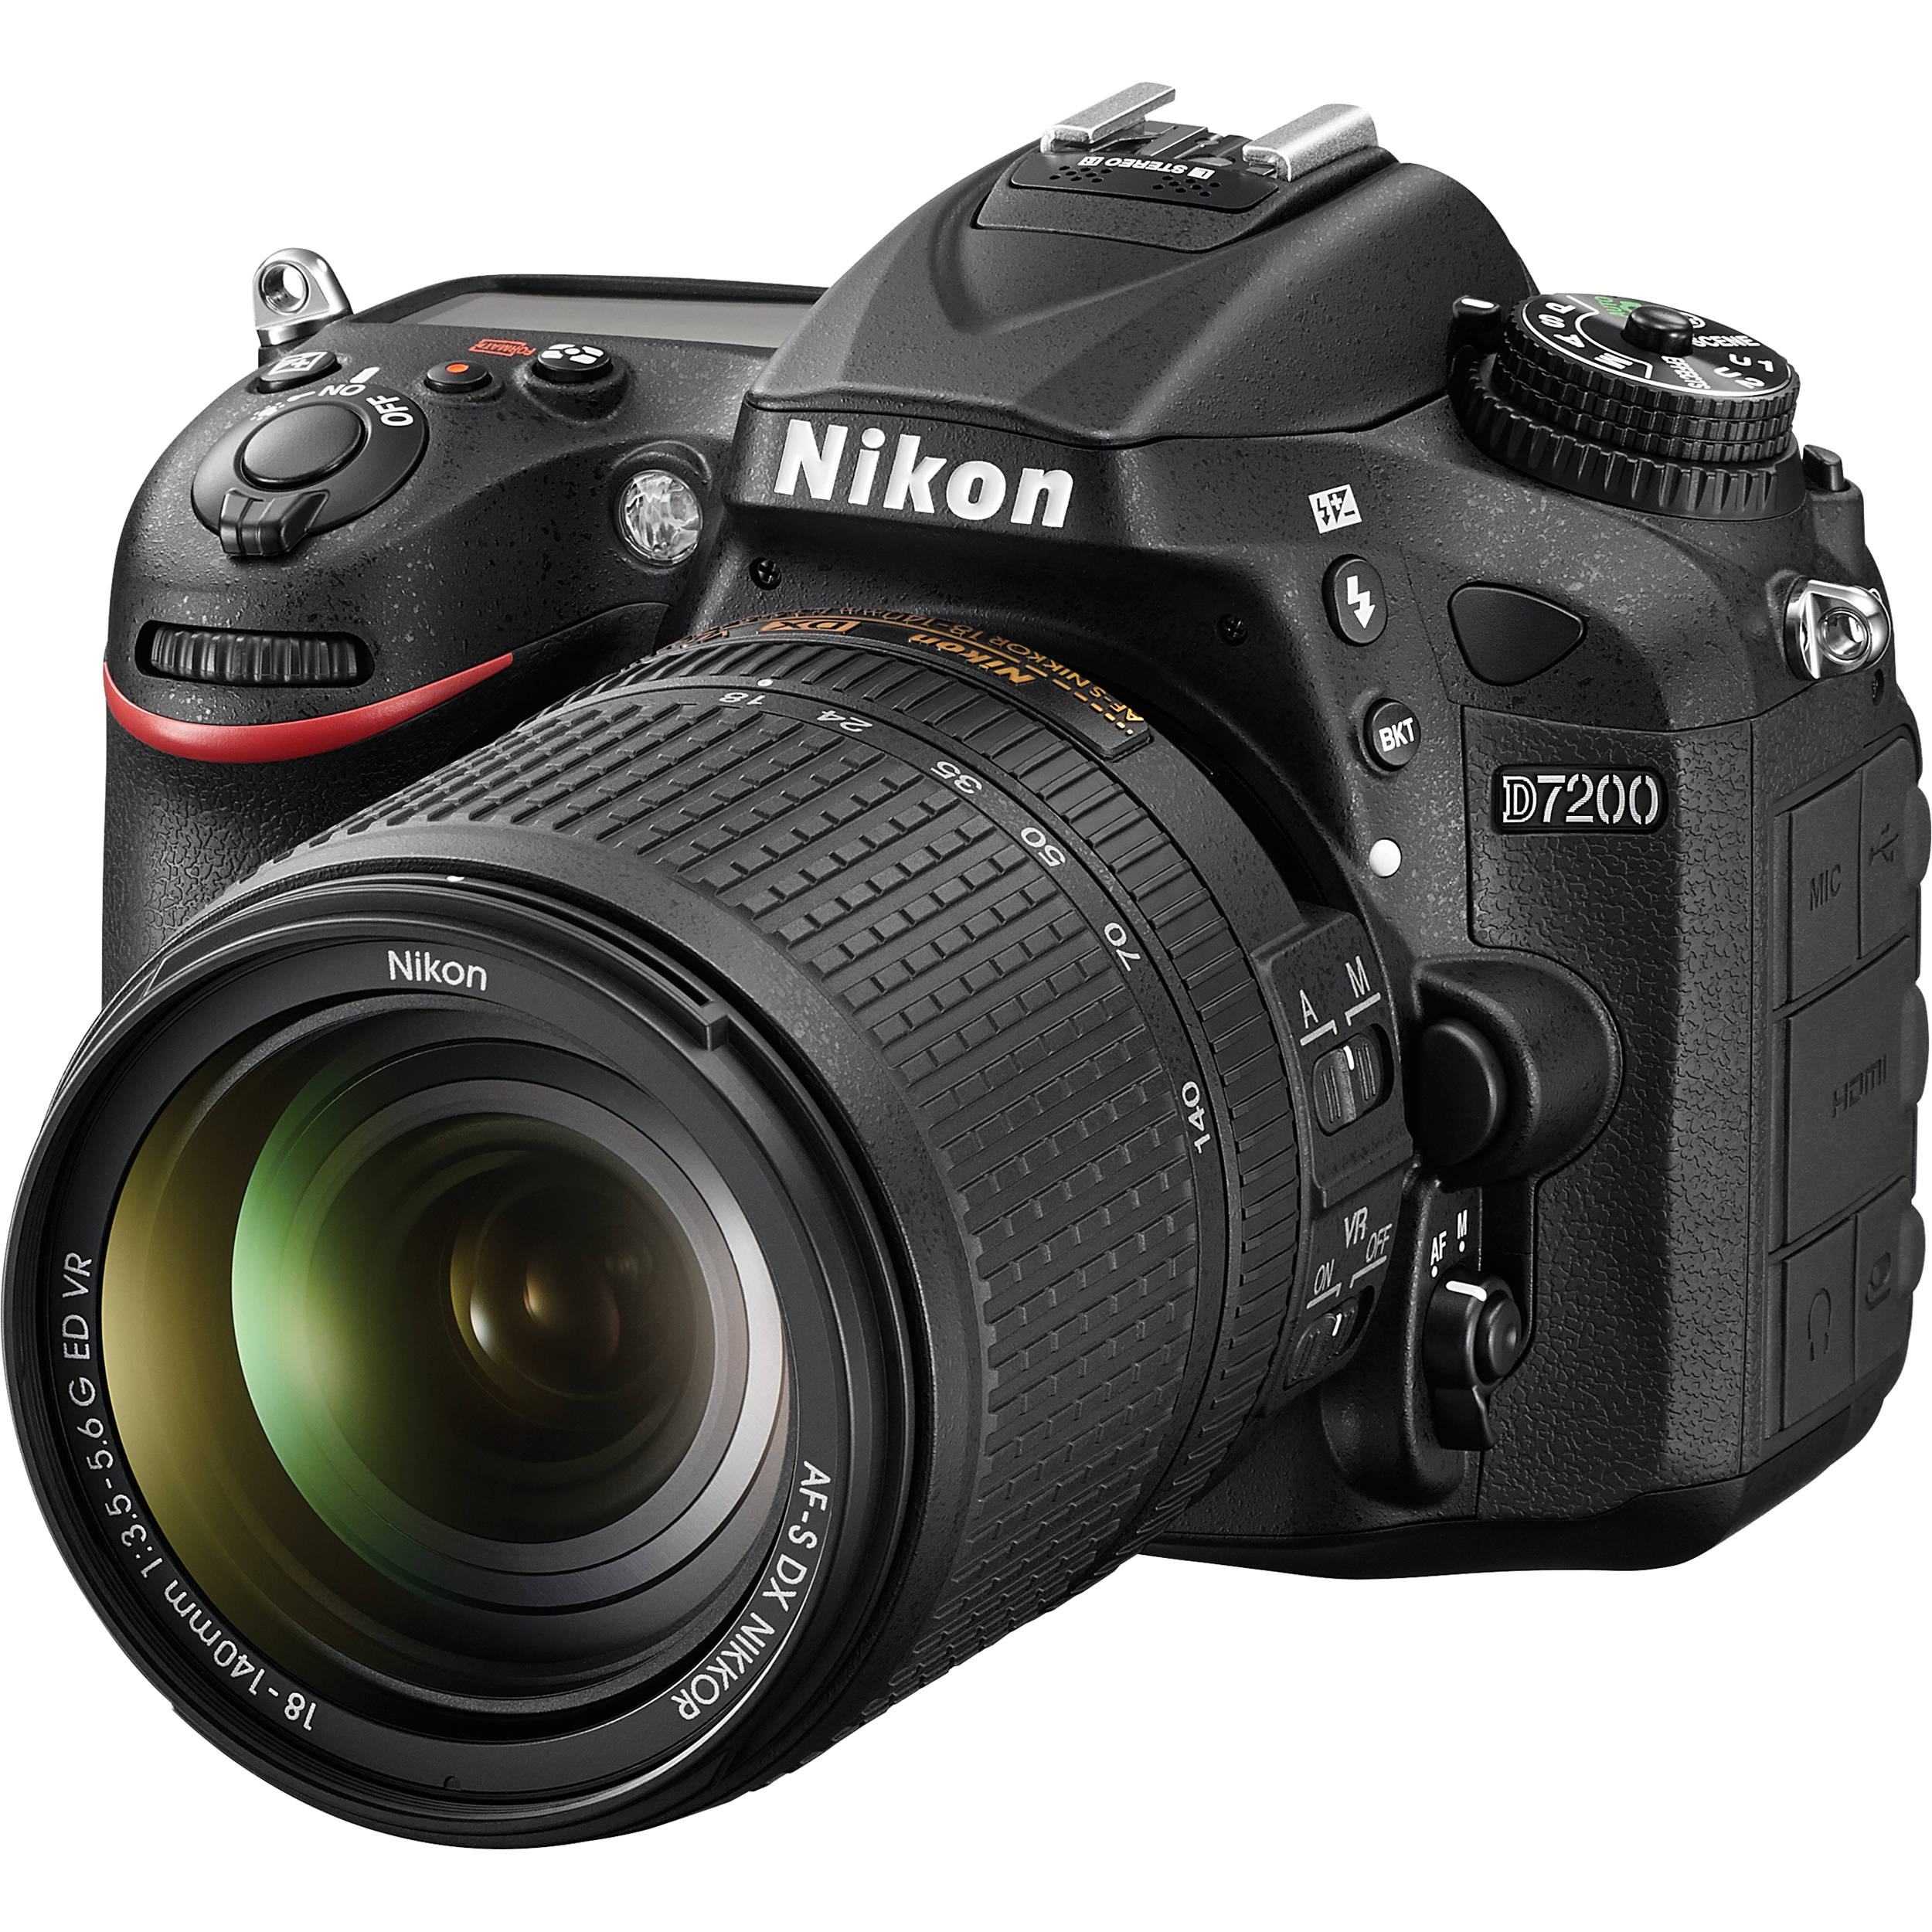 Nikon D7200 DSLR Camera with 18-140mm Lens 1555 B&H Photo Video